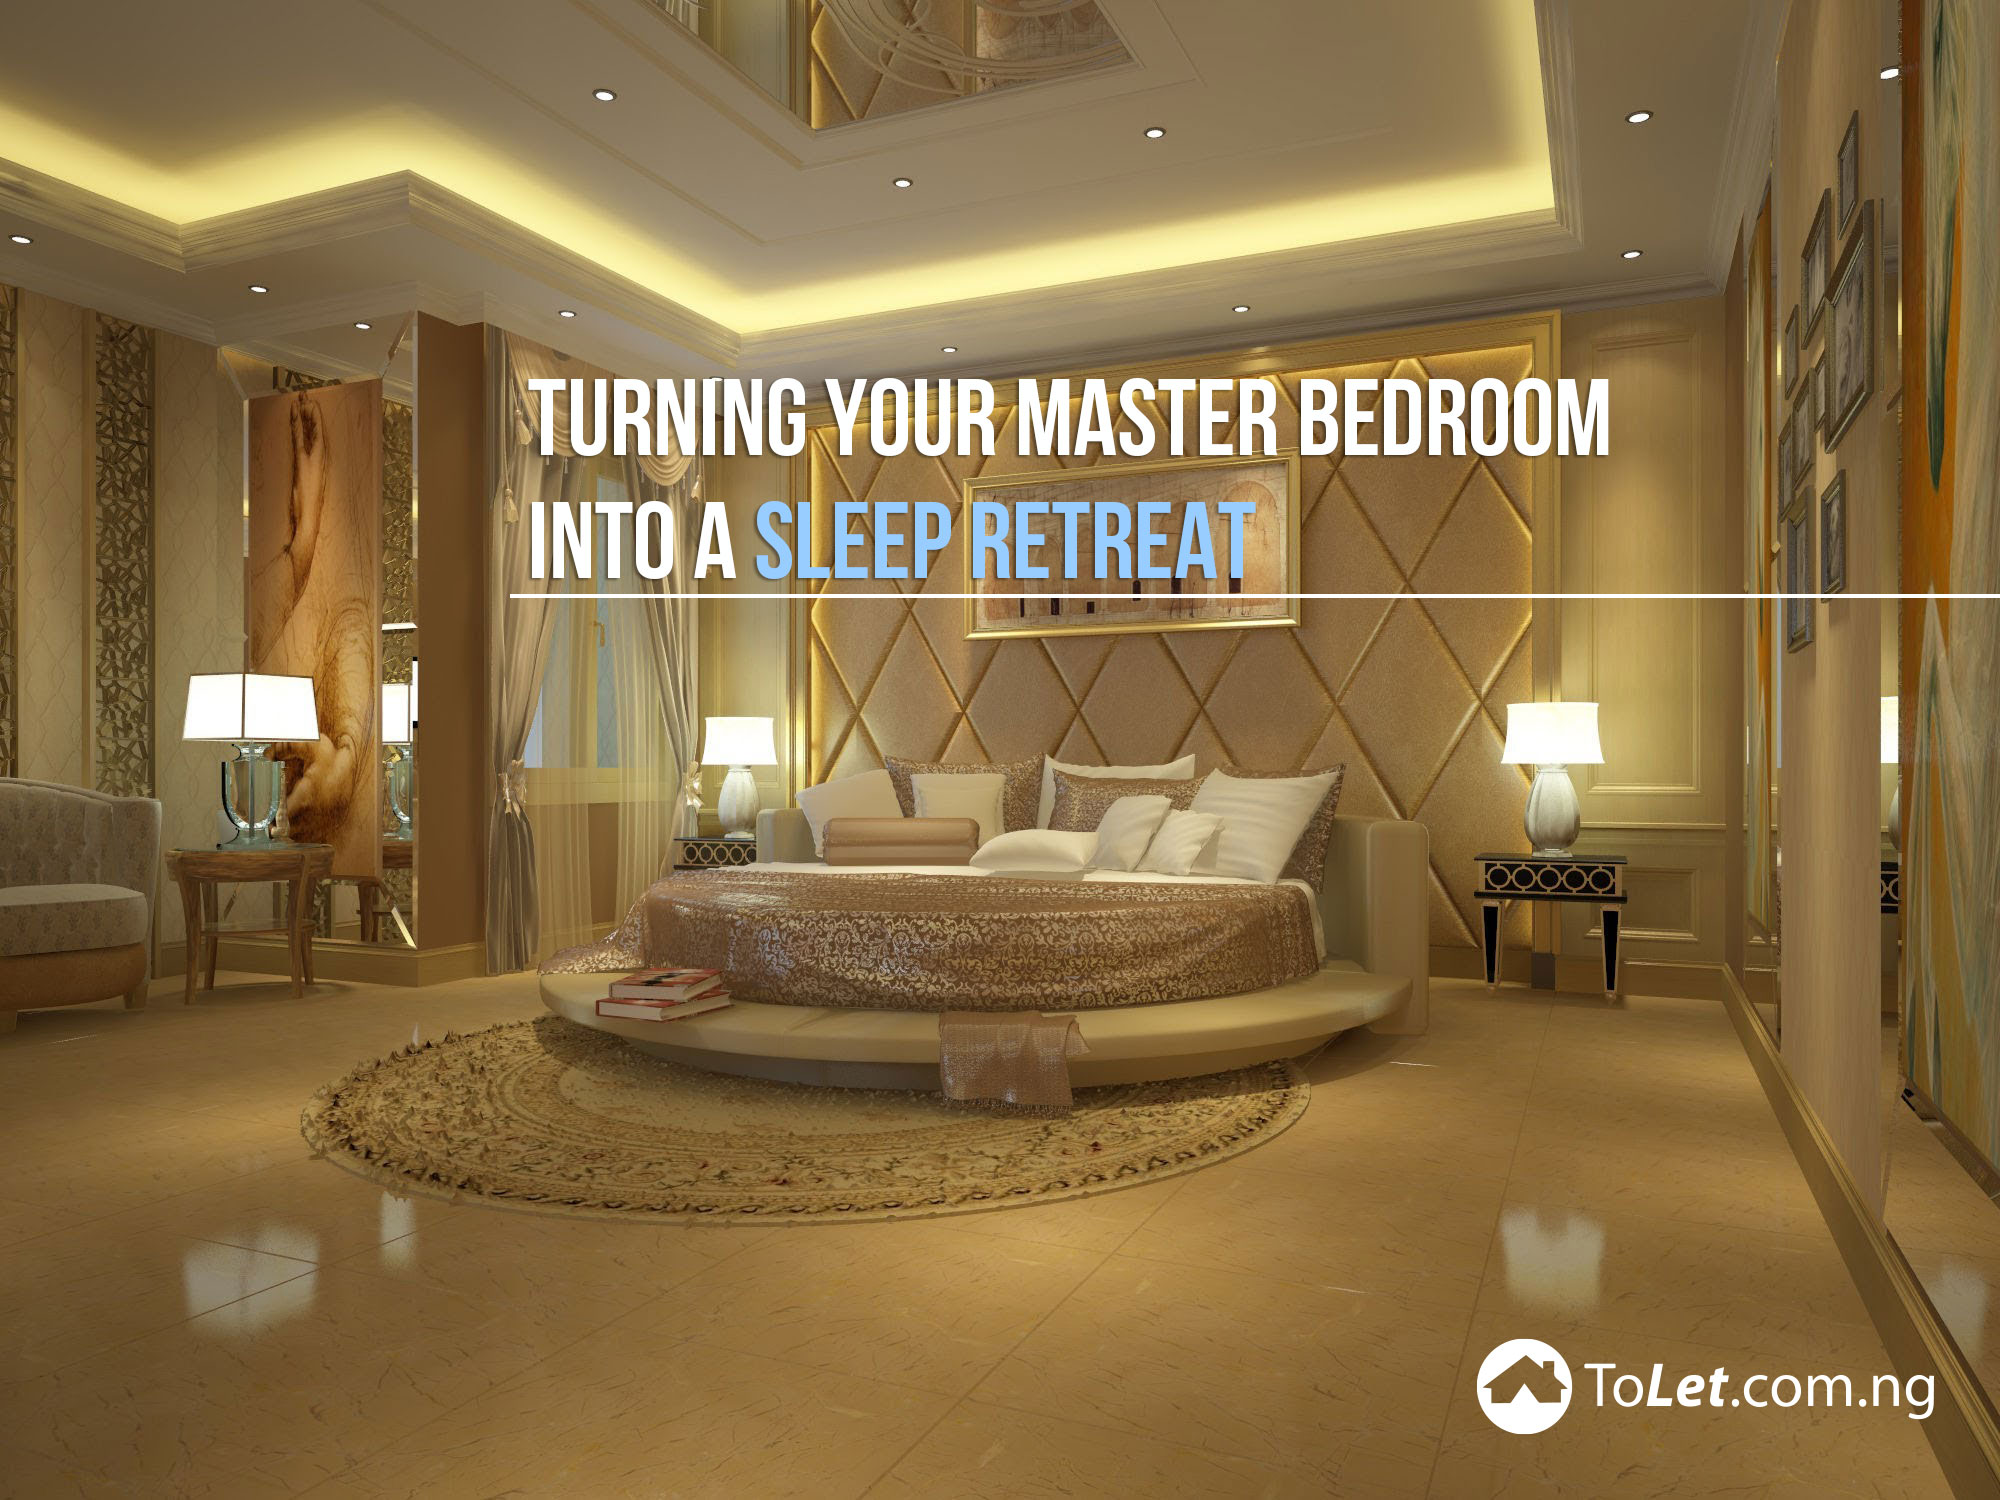 Turning Your Master Bedroom Into A Sleep Retreat